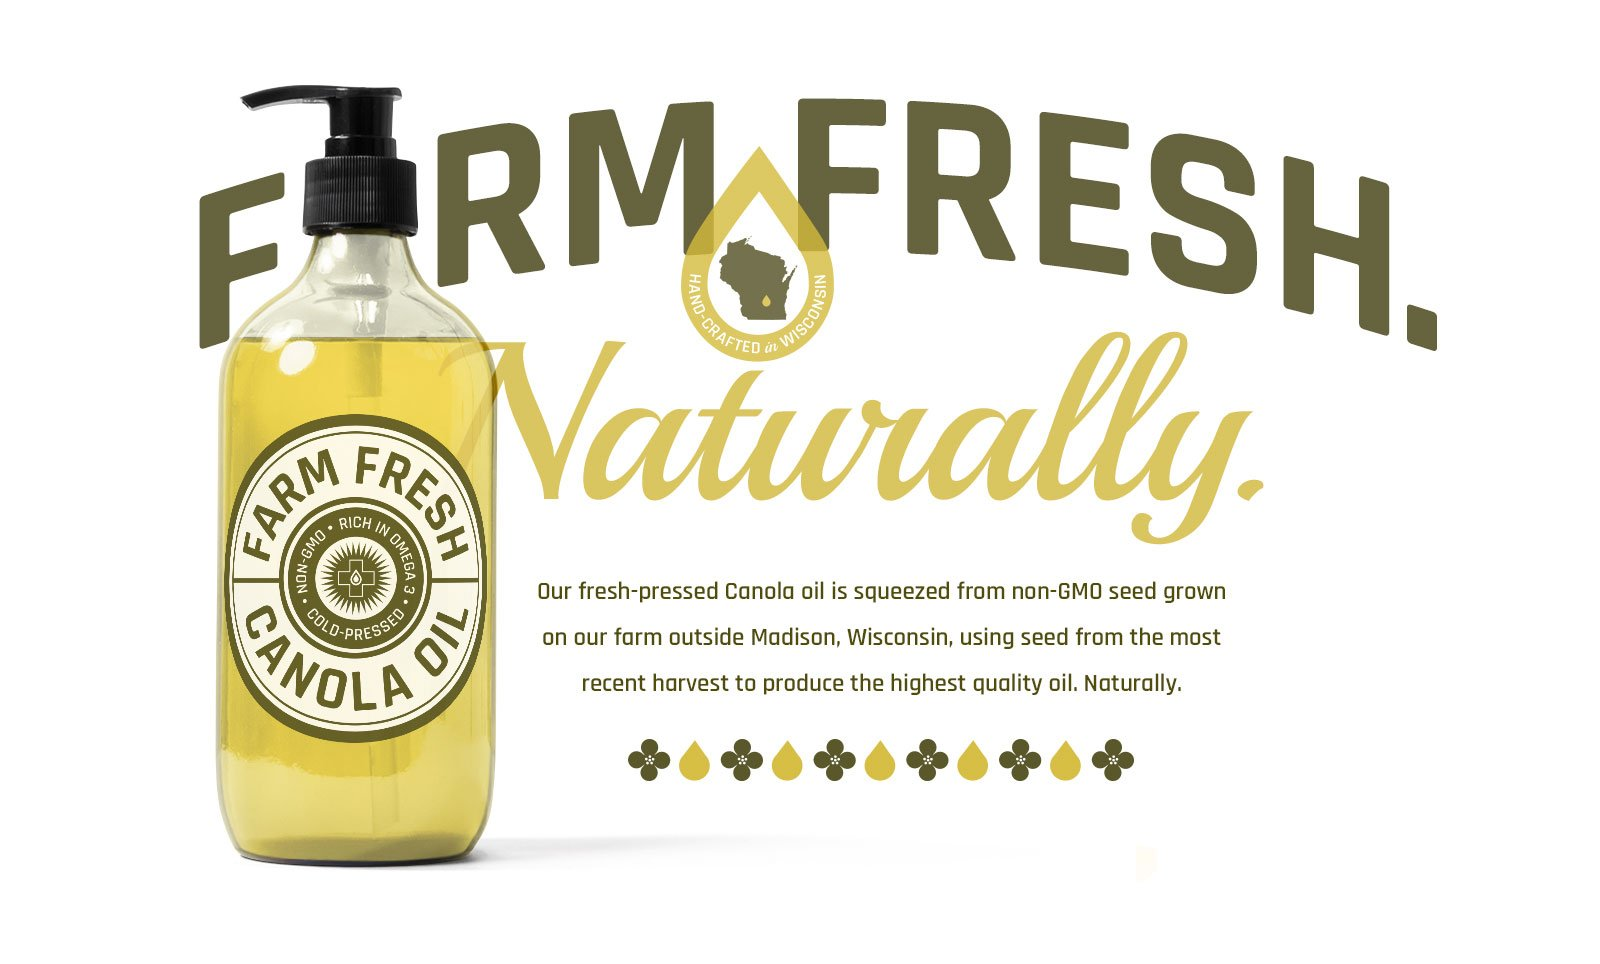 Brand identity and ad layout for Farm Fresh Canola Oil by Phonographik Design Studio